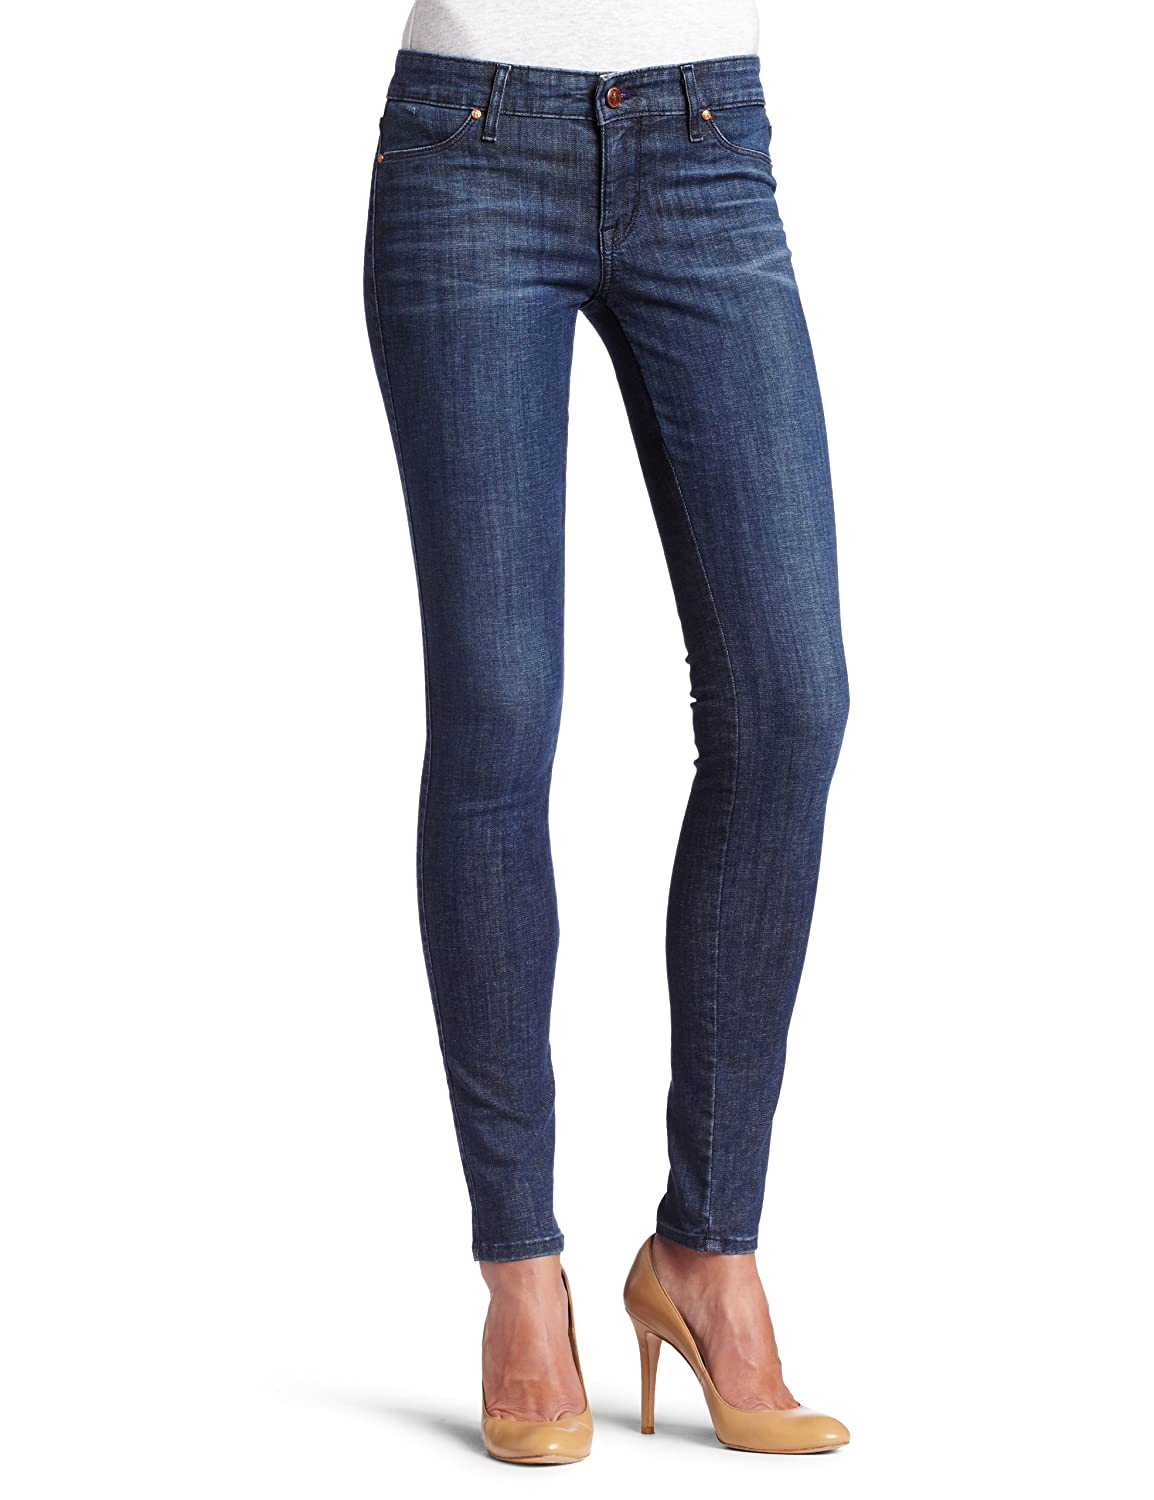 Rich & Skinny  - Women's Legacy Jean Legging from amazon.com